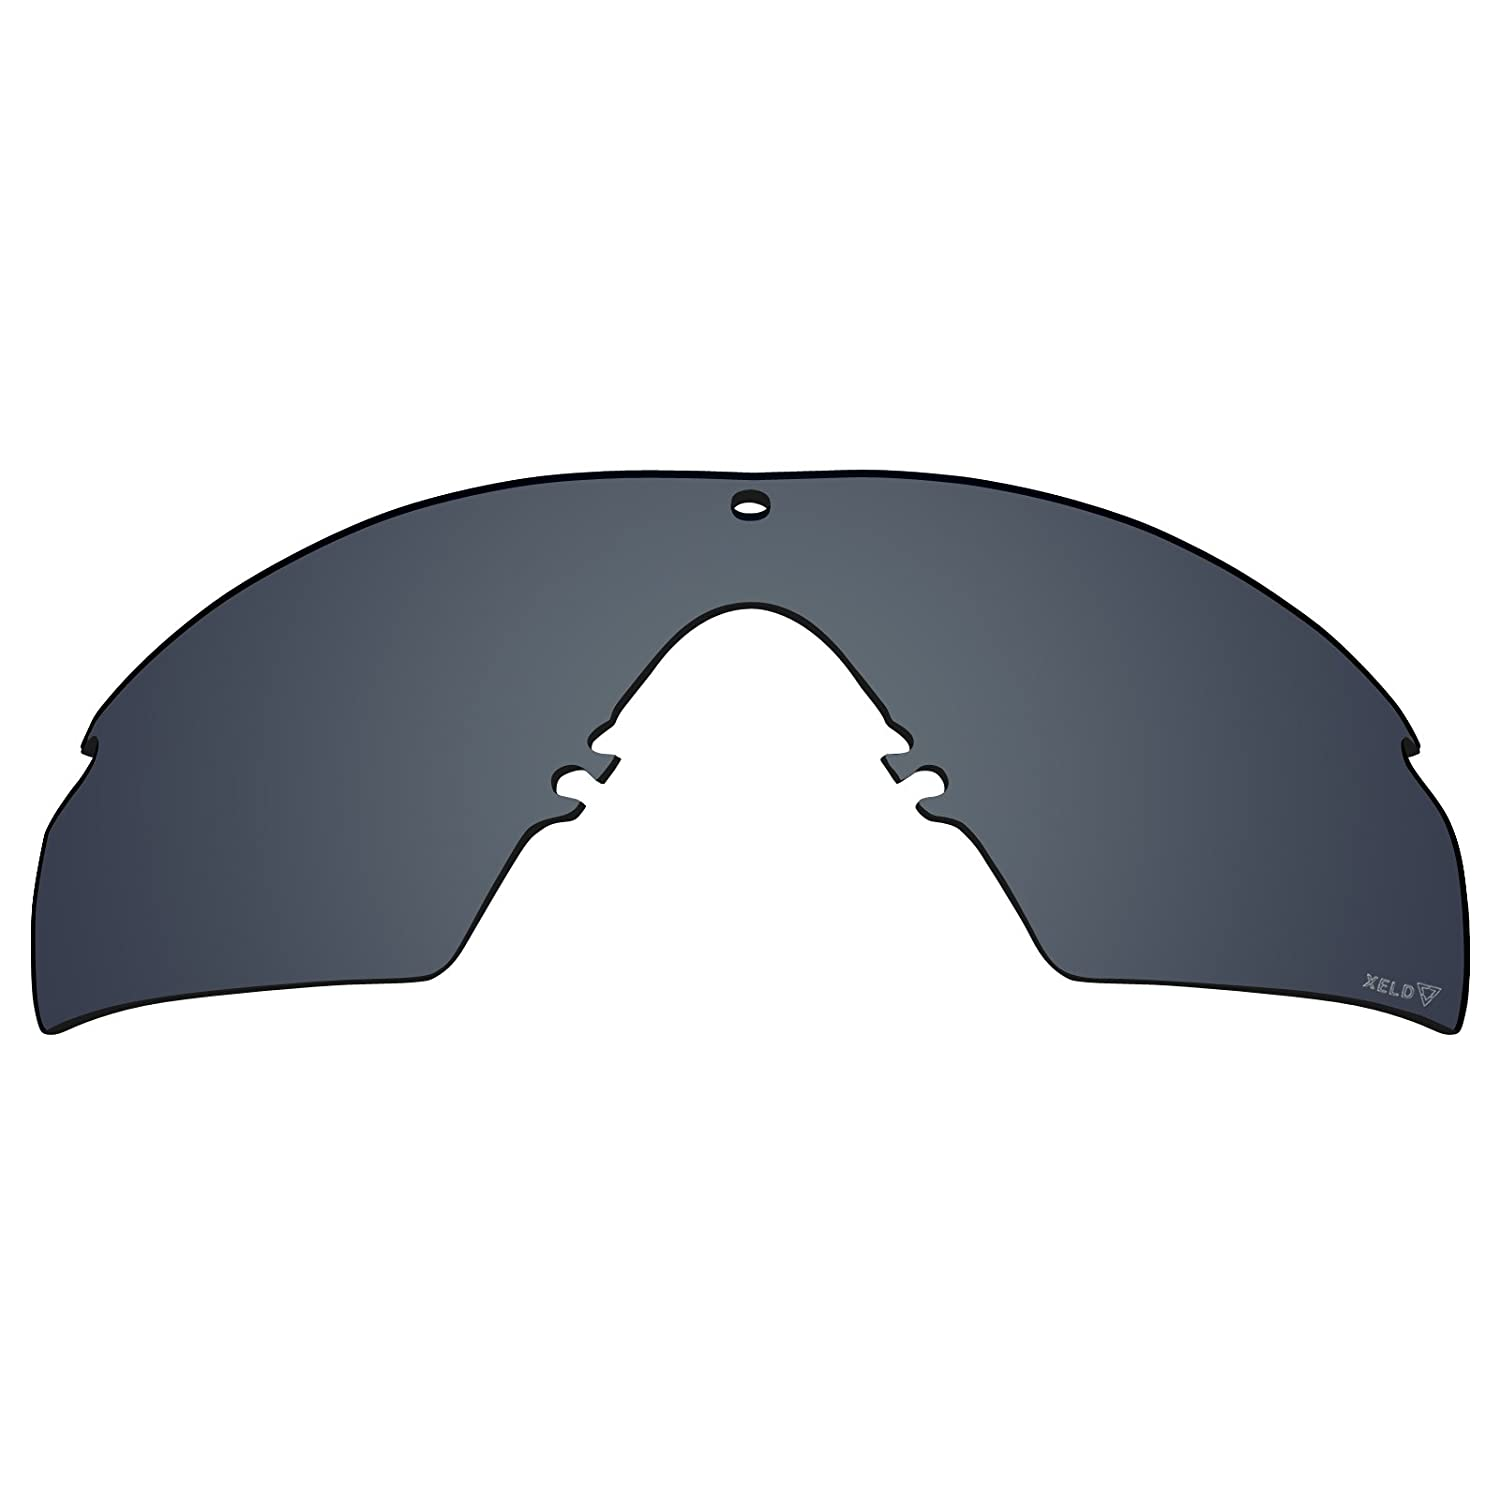 20cae542ca2 Mryok Replacement Lenses for Oakley Industrial M Frame 2.0 - Options  MryLens OY253SHC03SC larger image